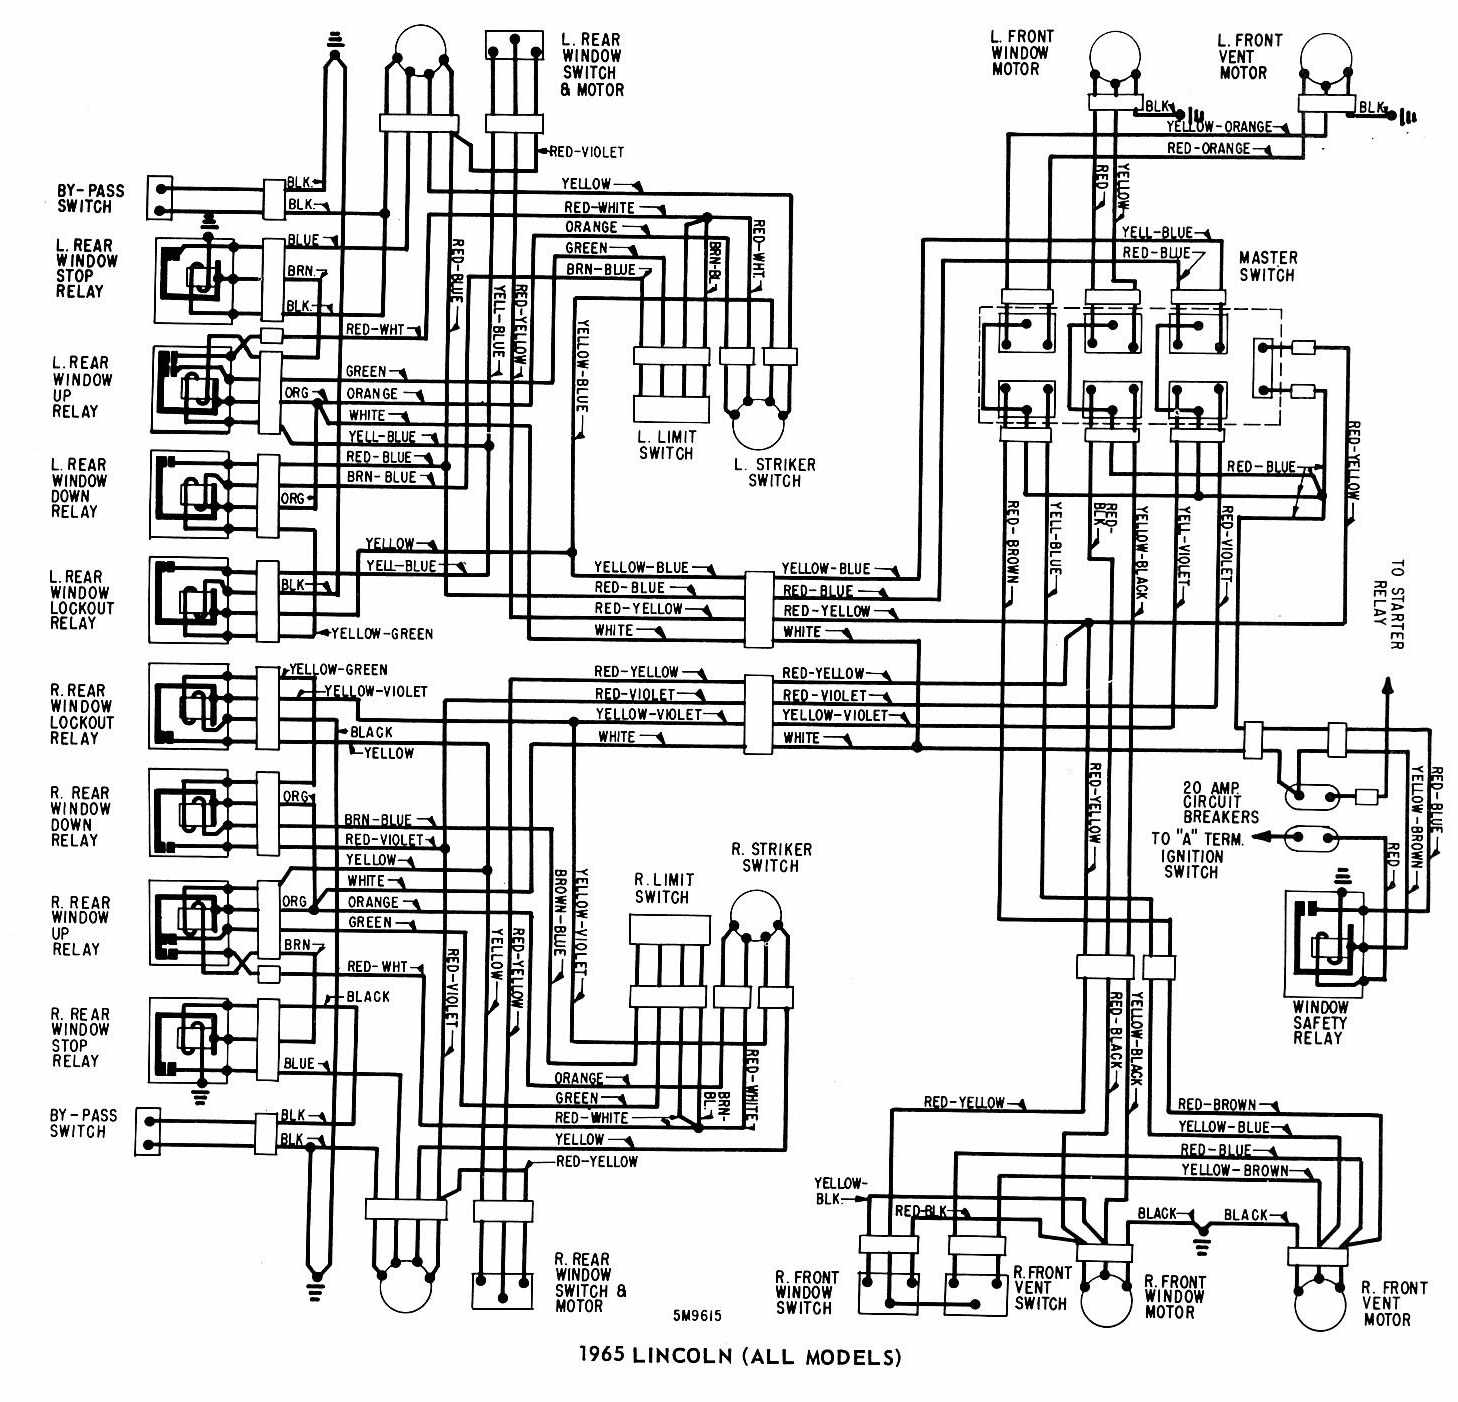 66 Lincoln Continental Wiring Diagrams 100 Images Color